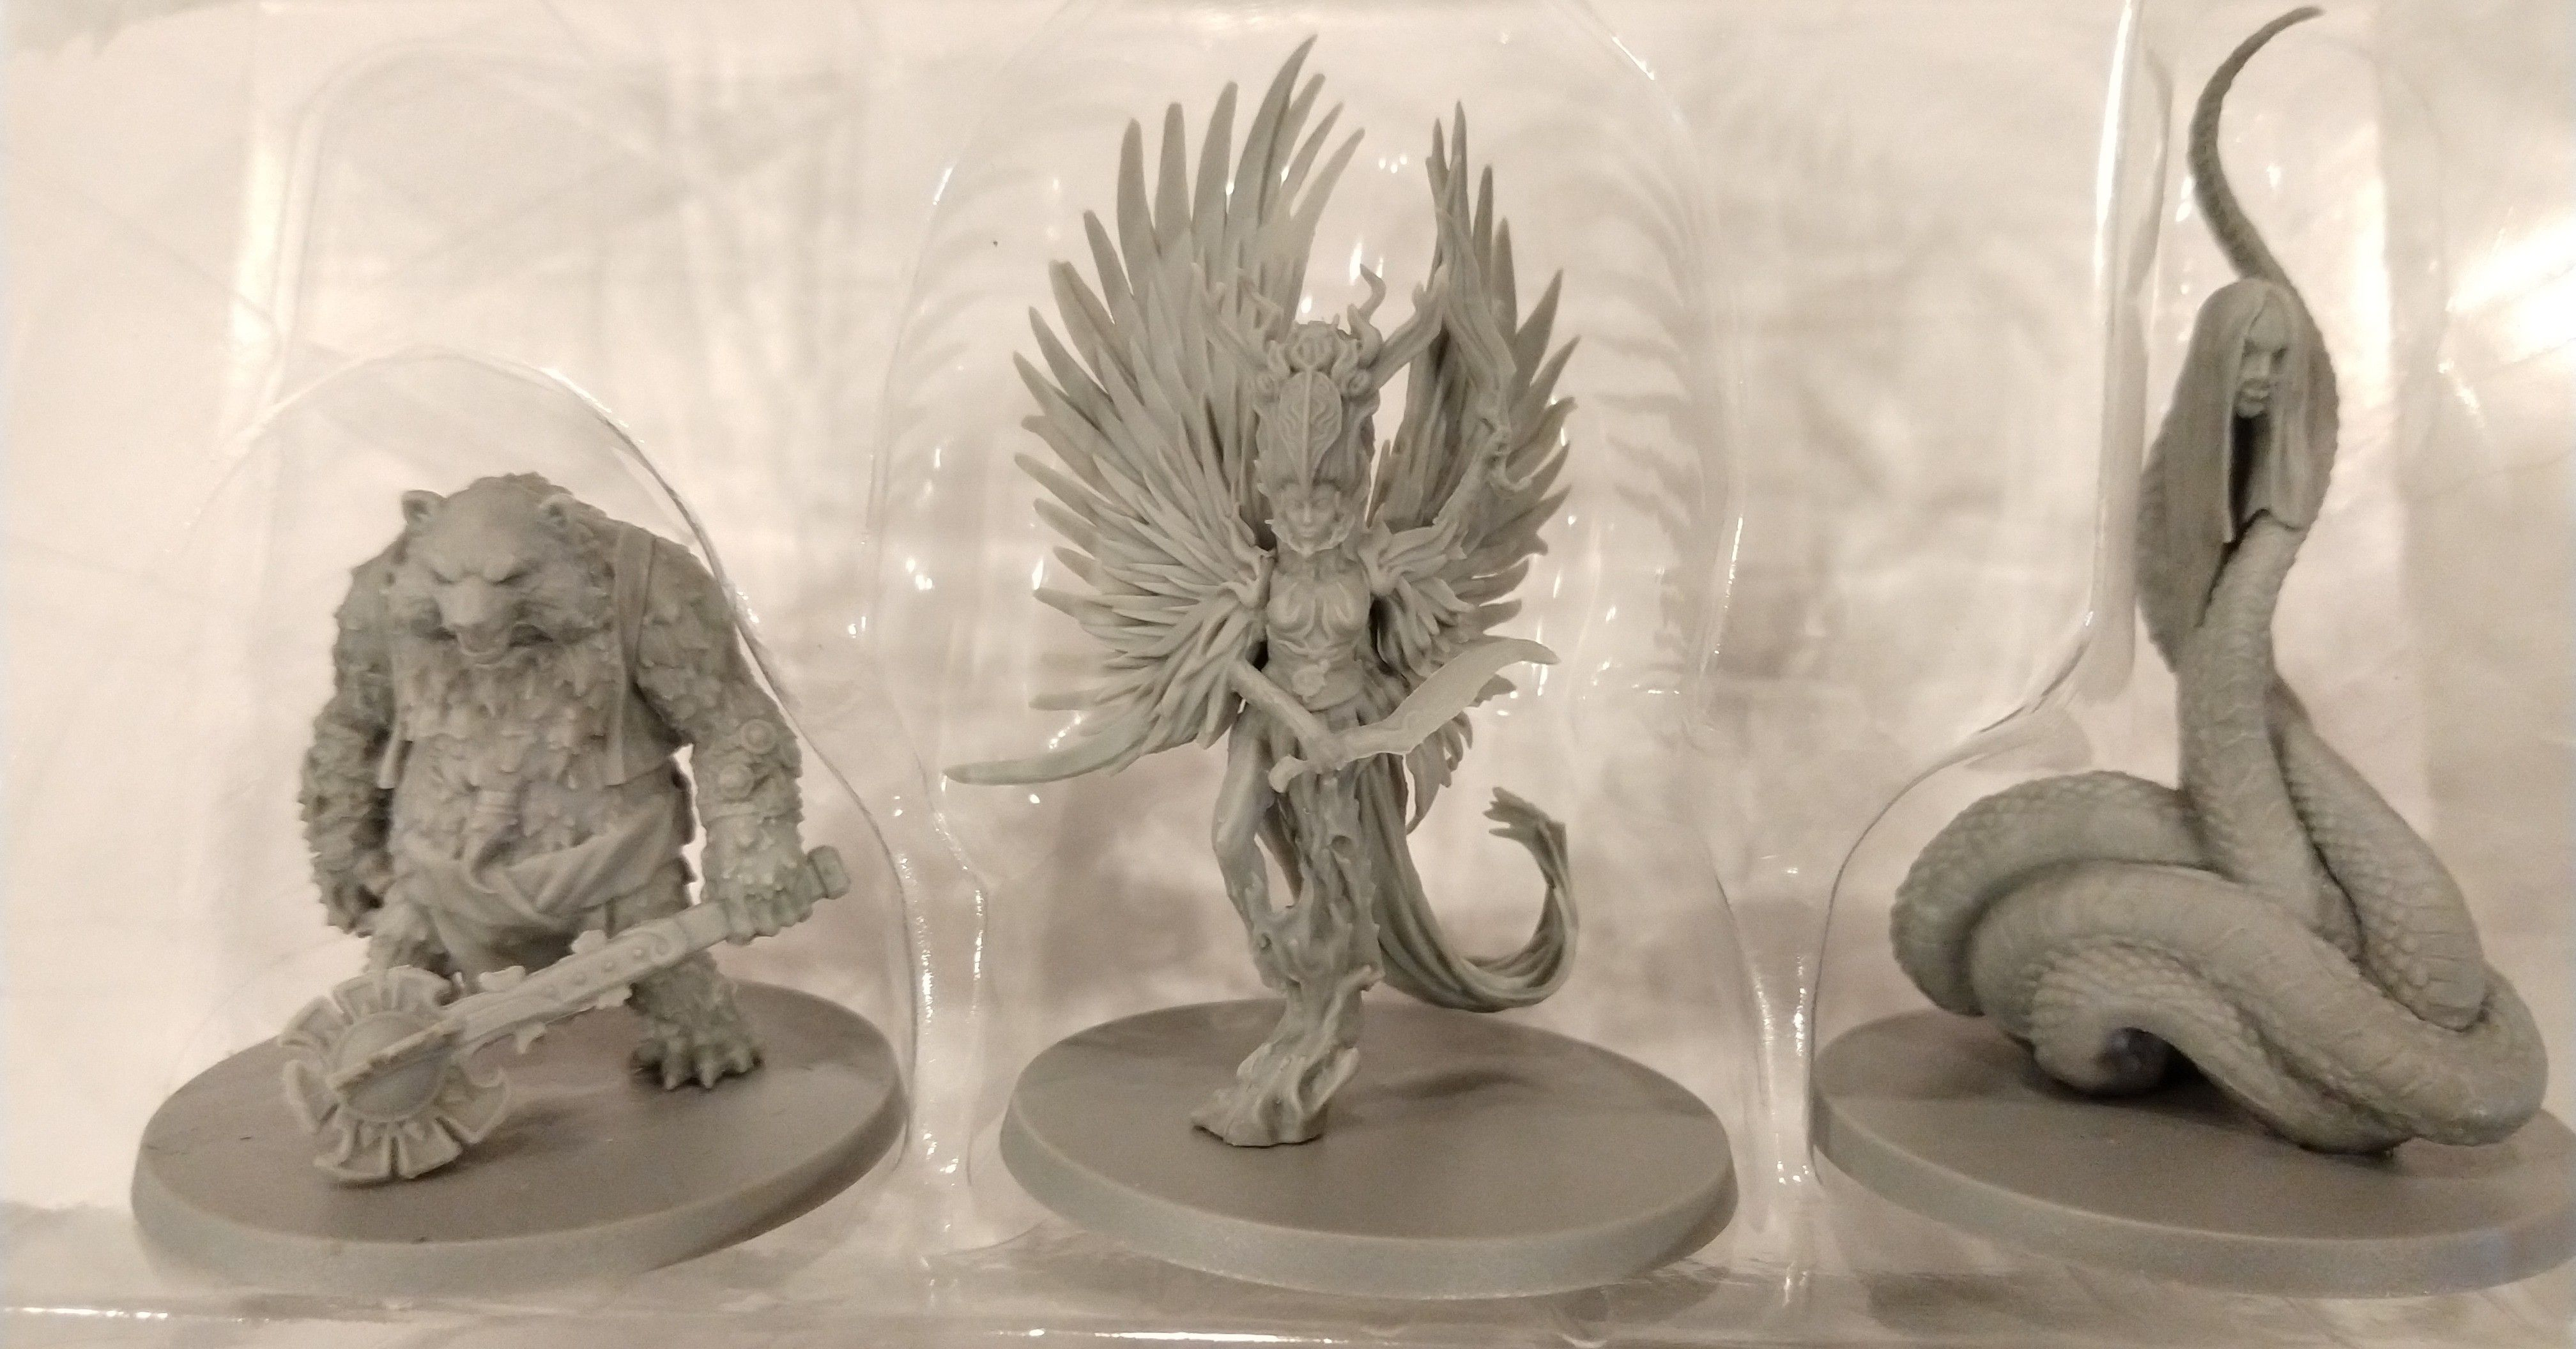 Rising Sun: Promo 1 – Sacred Warrior, Phoenix, and Nure-Onna